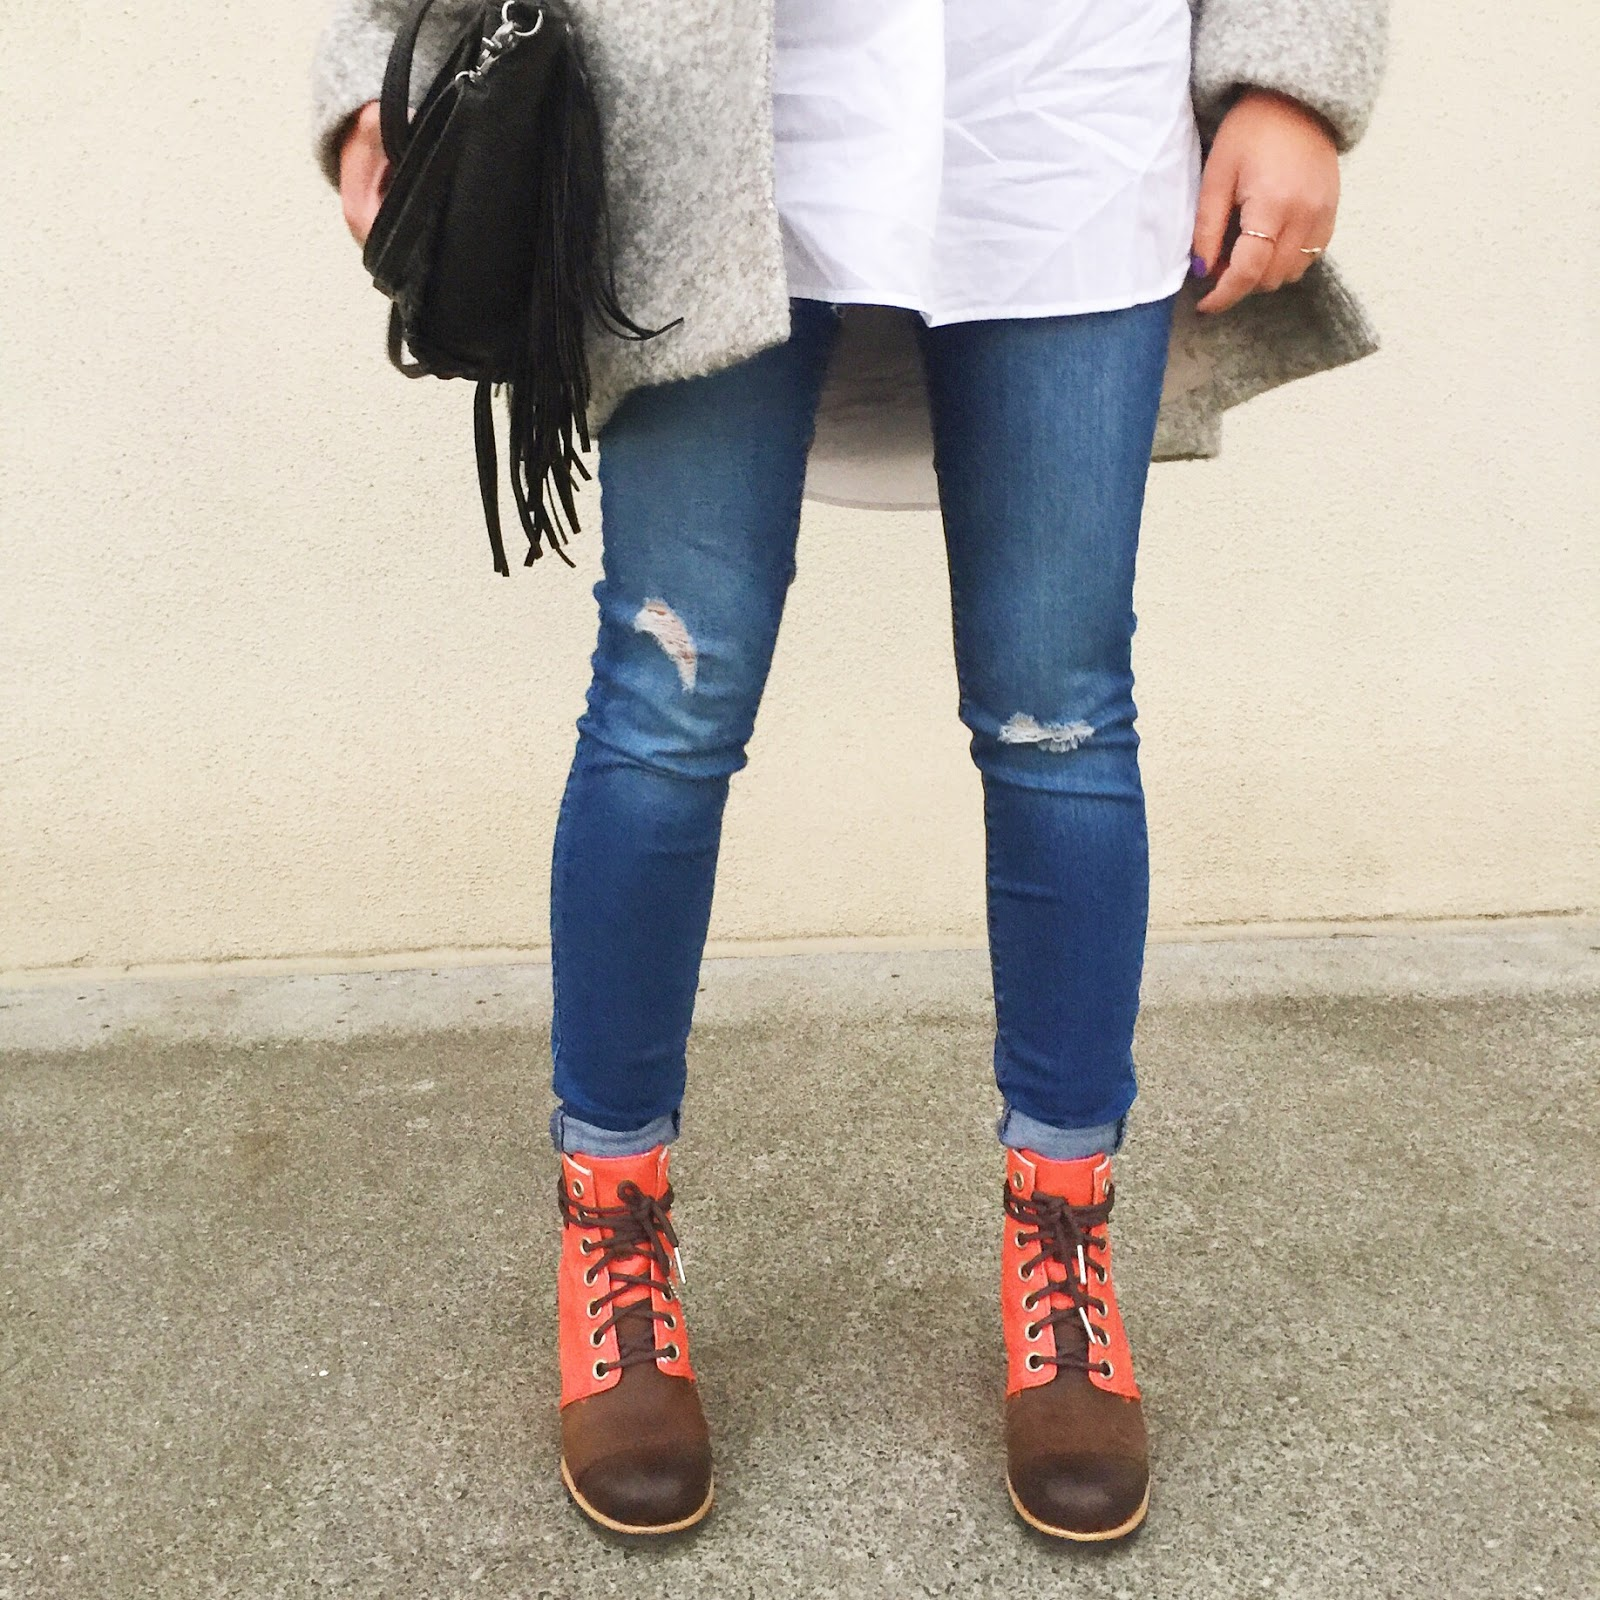 sorel style, sorel boots, columbia, wedged booties, casual look, portland fashion blogger, ootd, fblogger, the p town girls